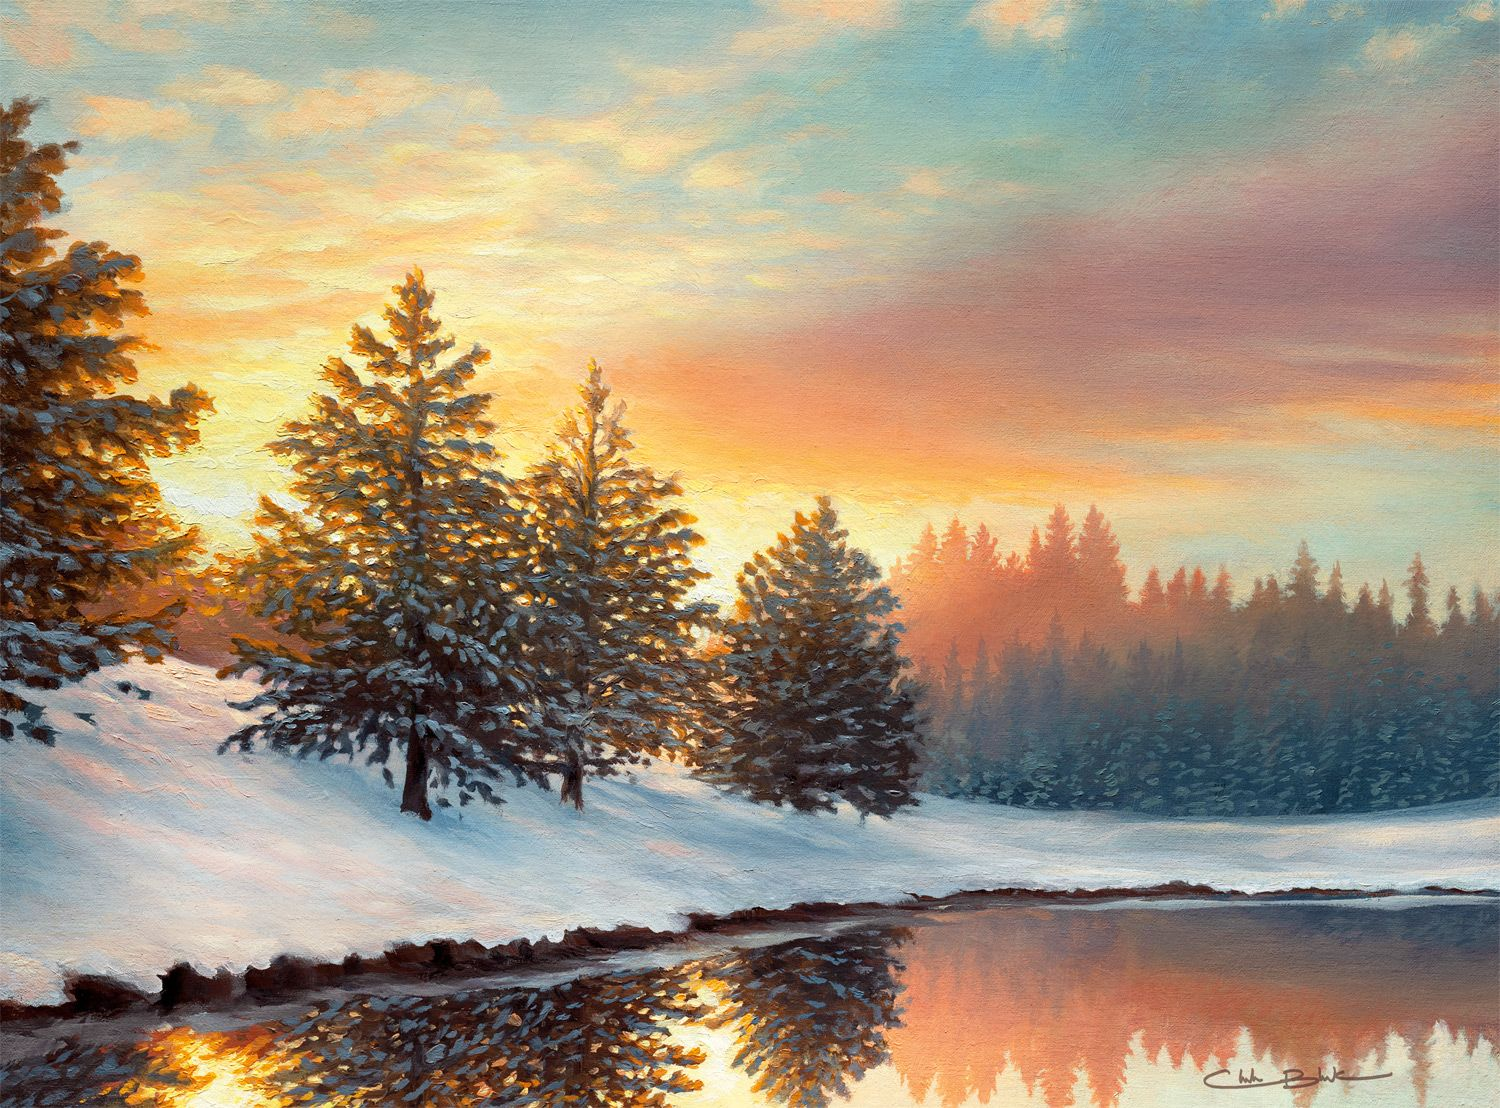 One Quiet Morning Lakes / Rivers / Streams Jigsaw Puzzle